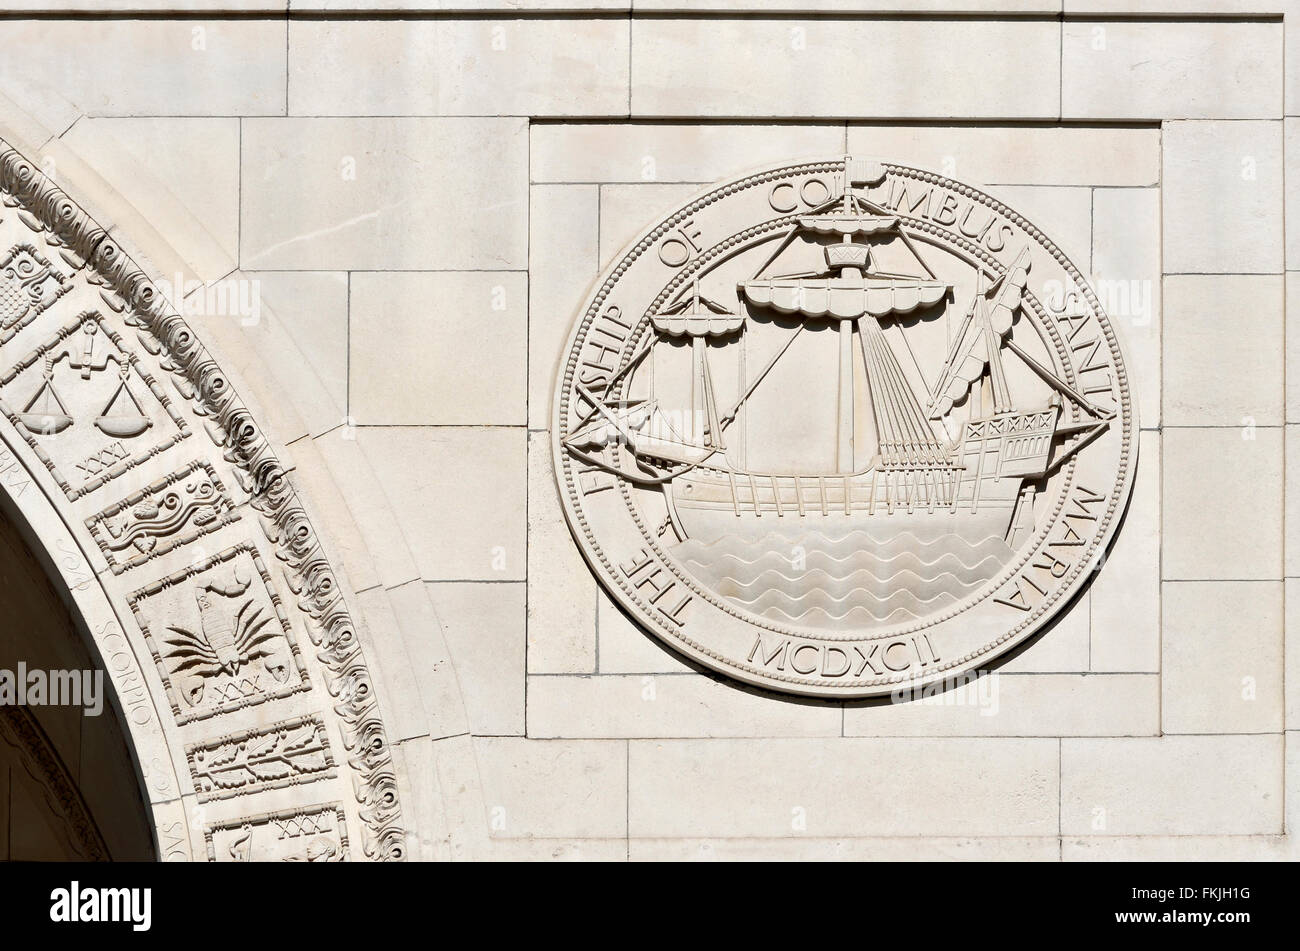 London, England, UK. Santa Maria, the Flagship of Columbus MCDXCII (1492) carved stone relief on the exterior wall - Stock Image